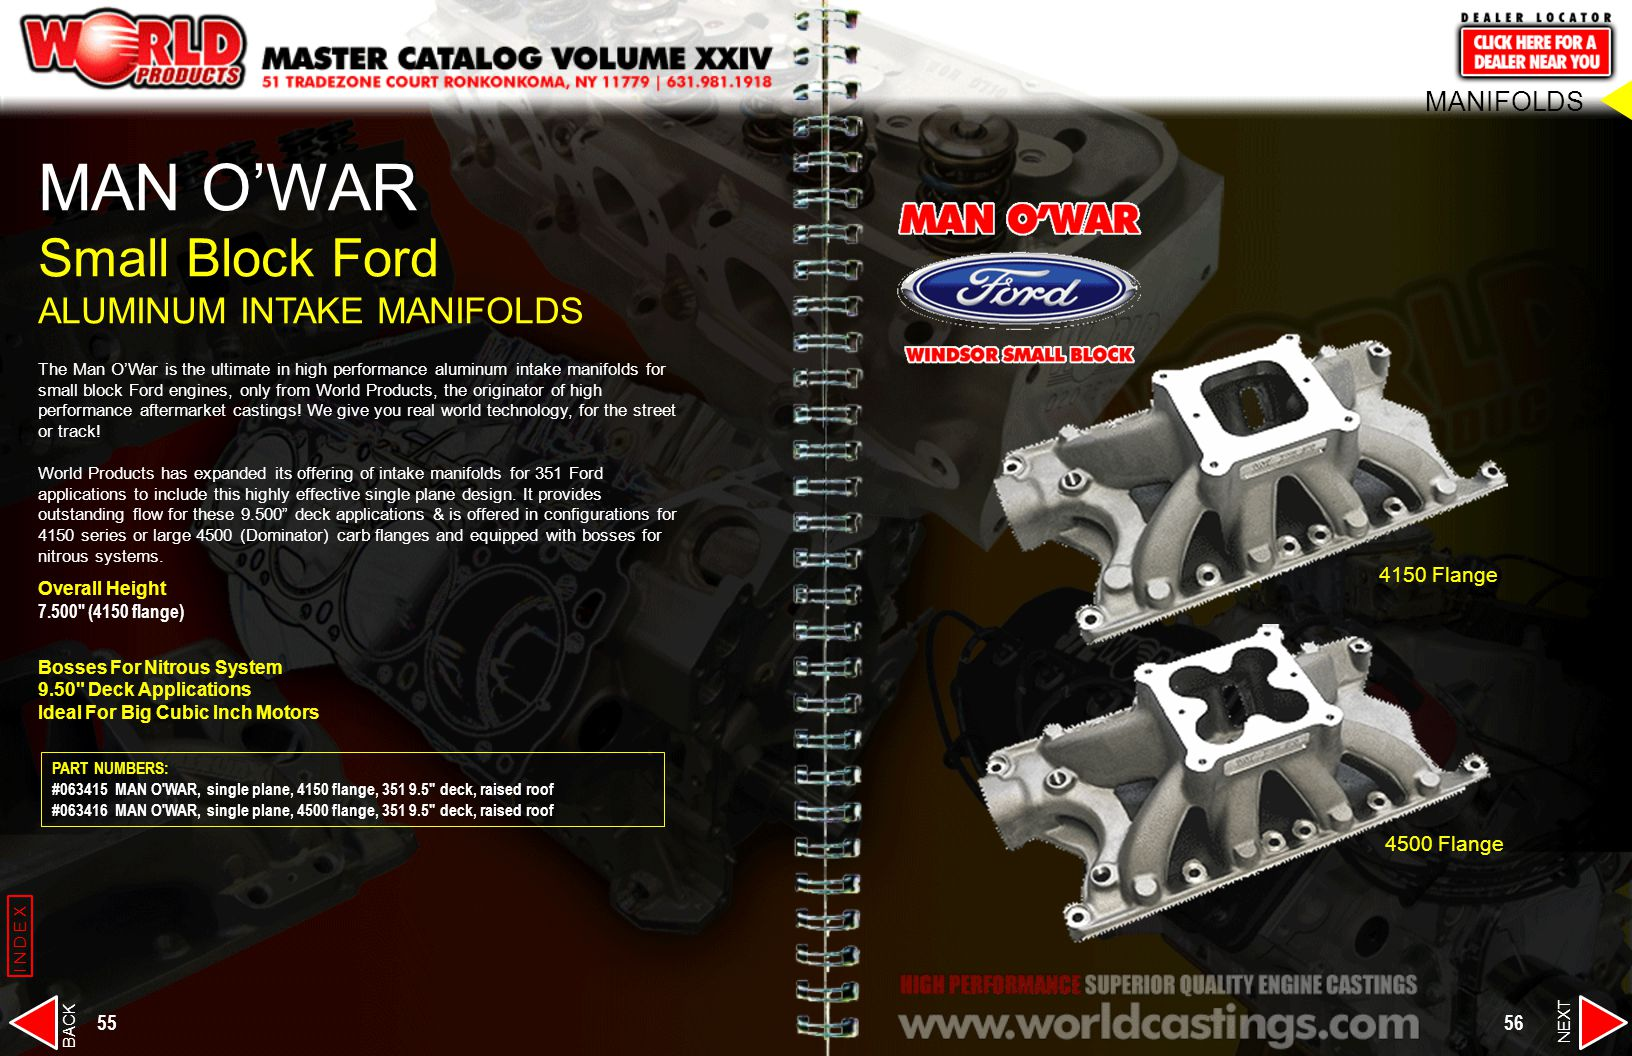 The Man OWar is the ultimate in high performance aluminum intake manifolds for small block Ford engines, only from World Products, the originator of h